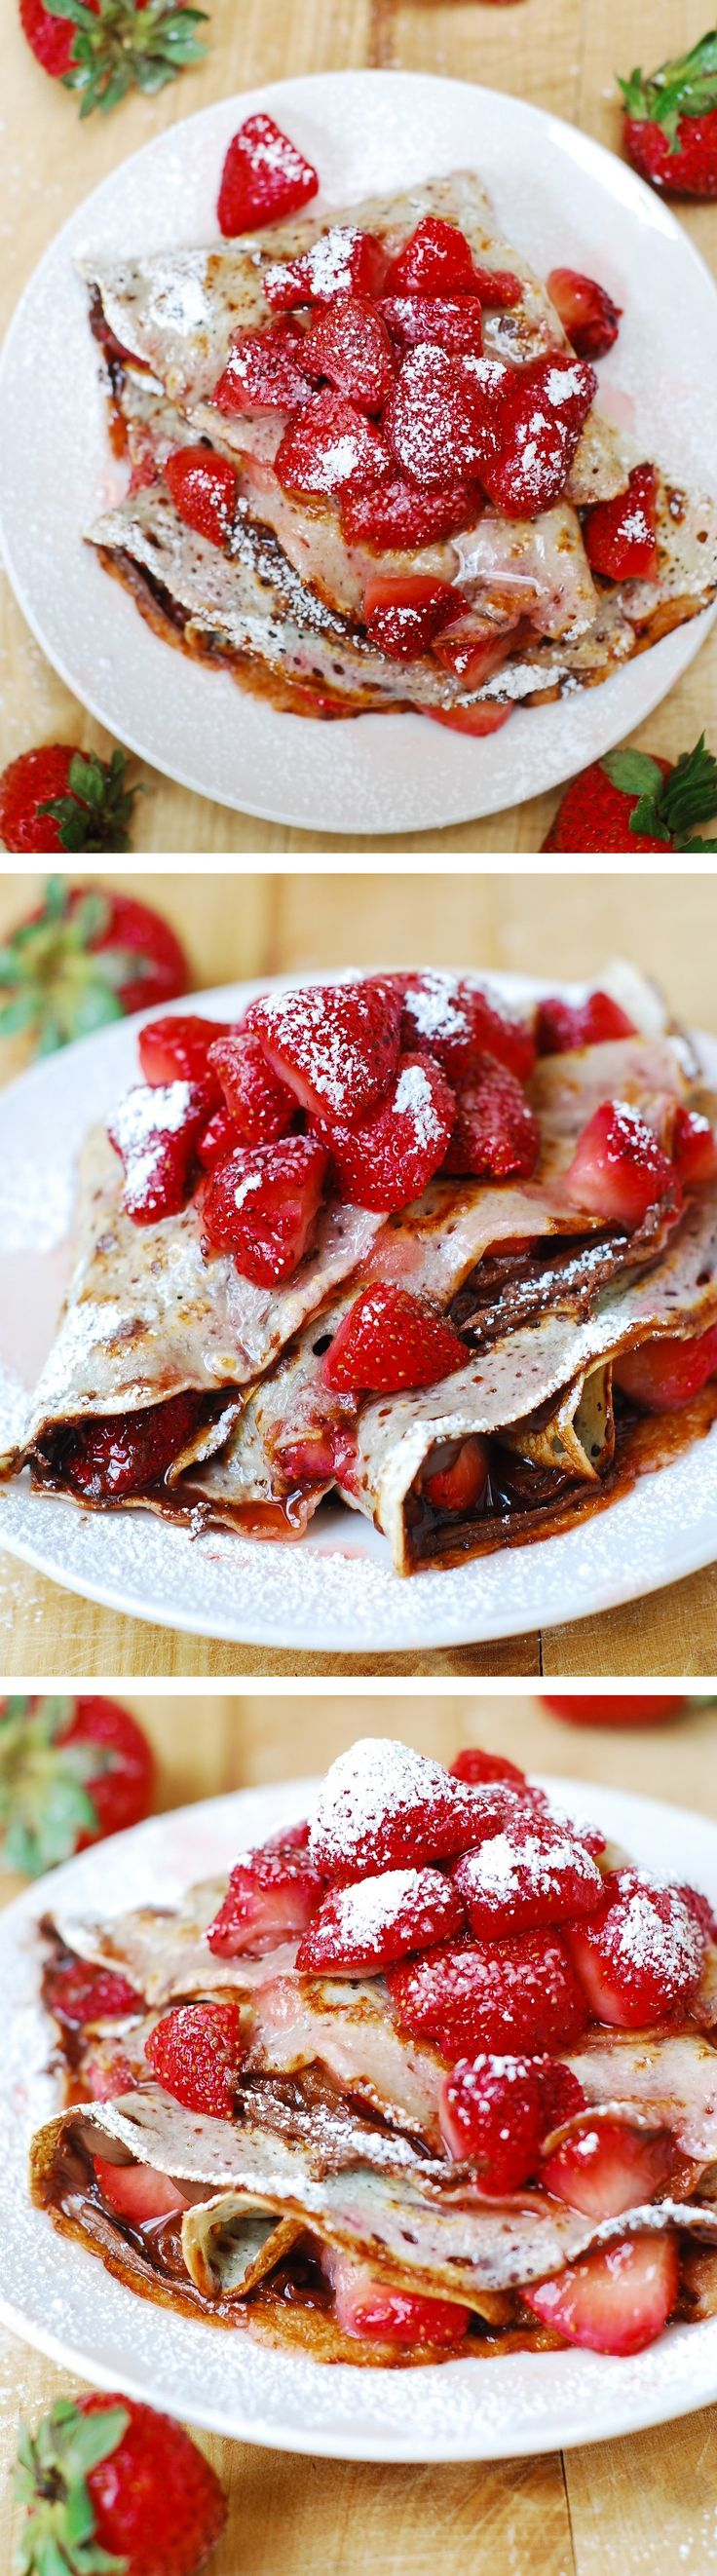 Strawberry Nutella crepes sprinkled with powdered sugar! Great Summer time brunch or dessert!